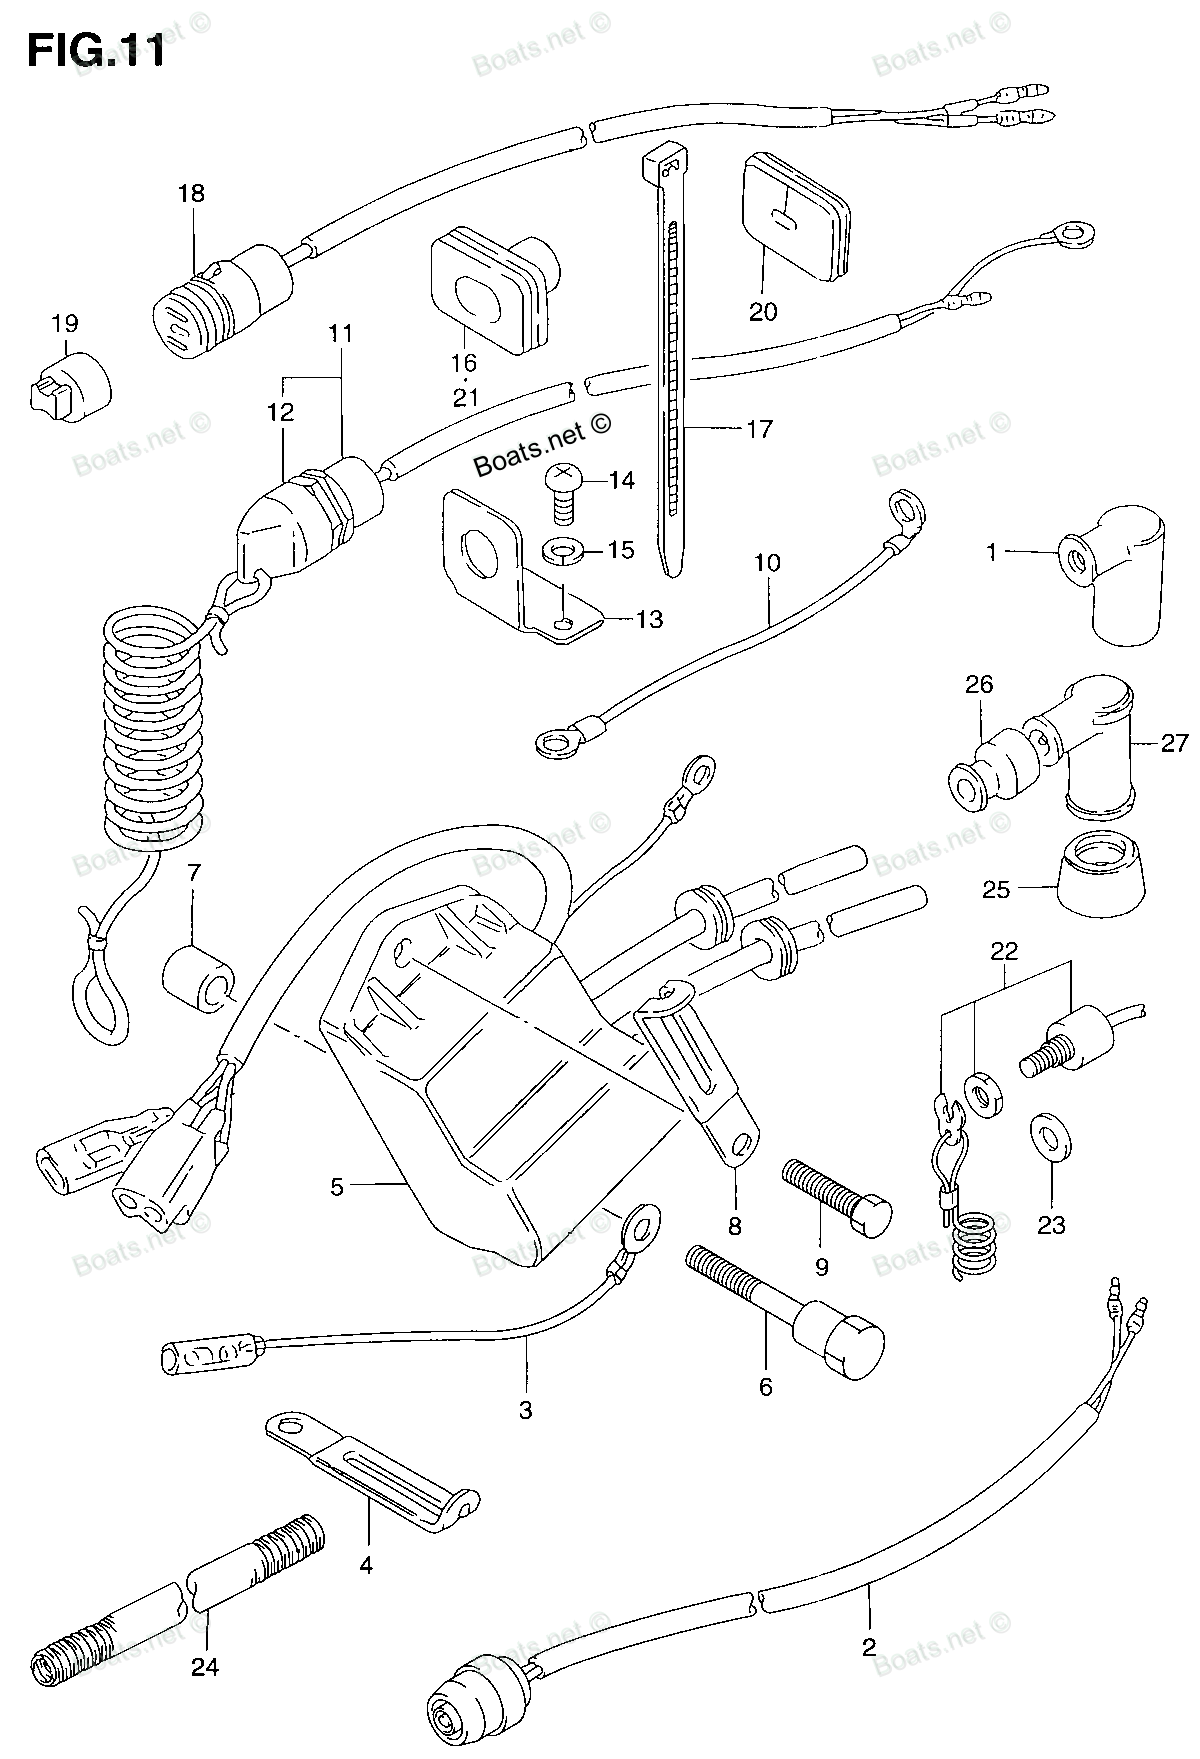 Suzuki Dt 30 Wiring Diagram Reinvent Your Half Switched Schematic 6 A 6hp Two Stroke The Kill Switch Broke In Can Rh Justanswer Com Motorcycle Diagrams Truck